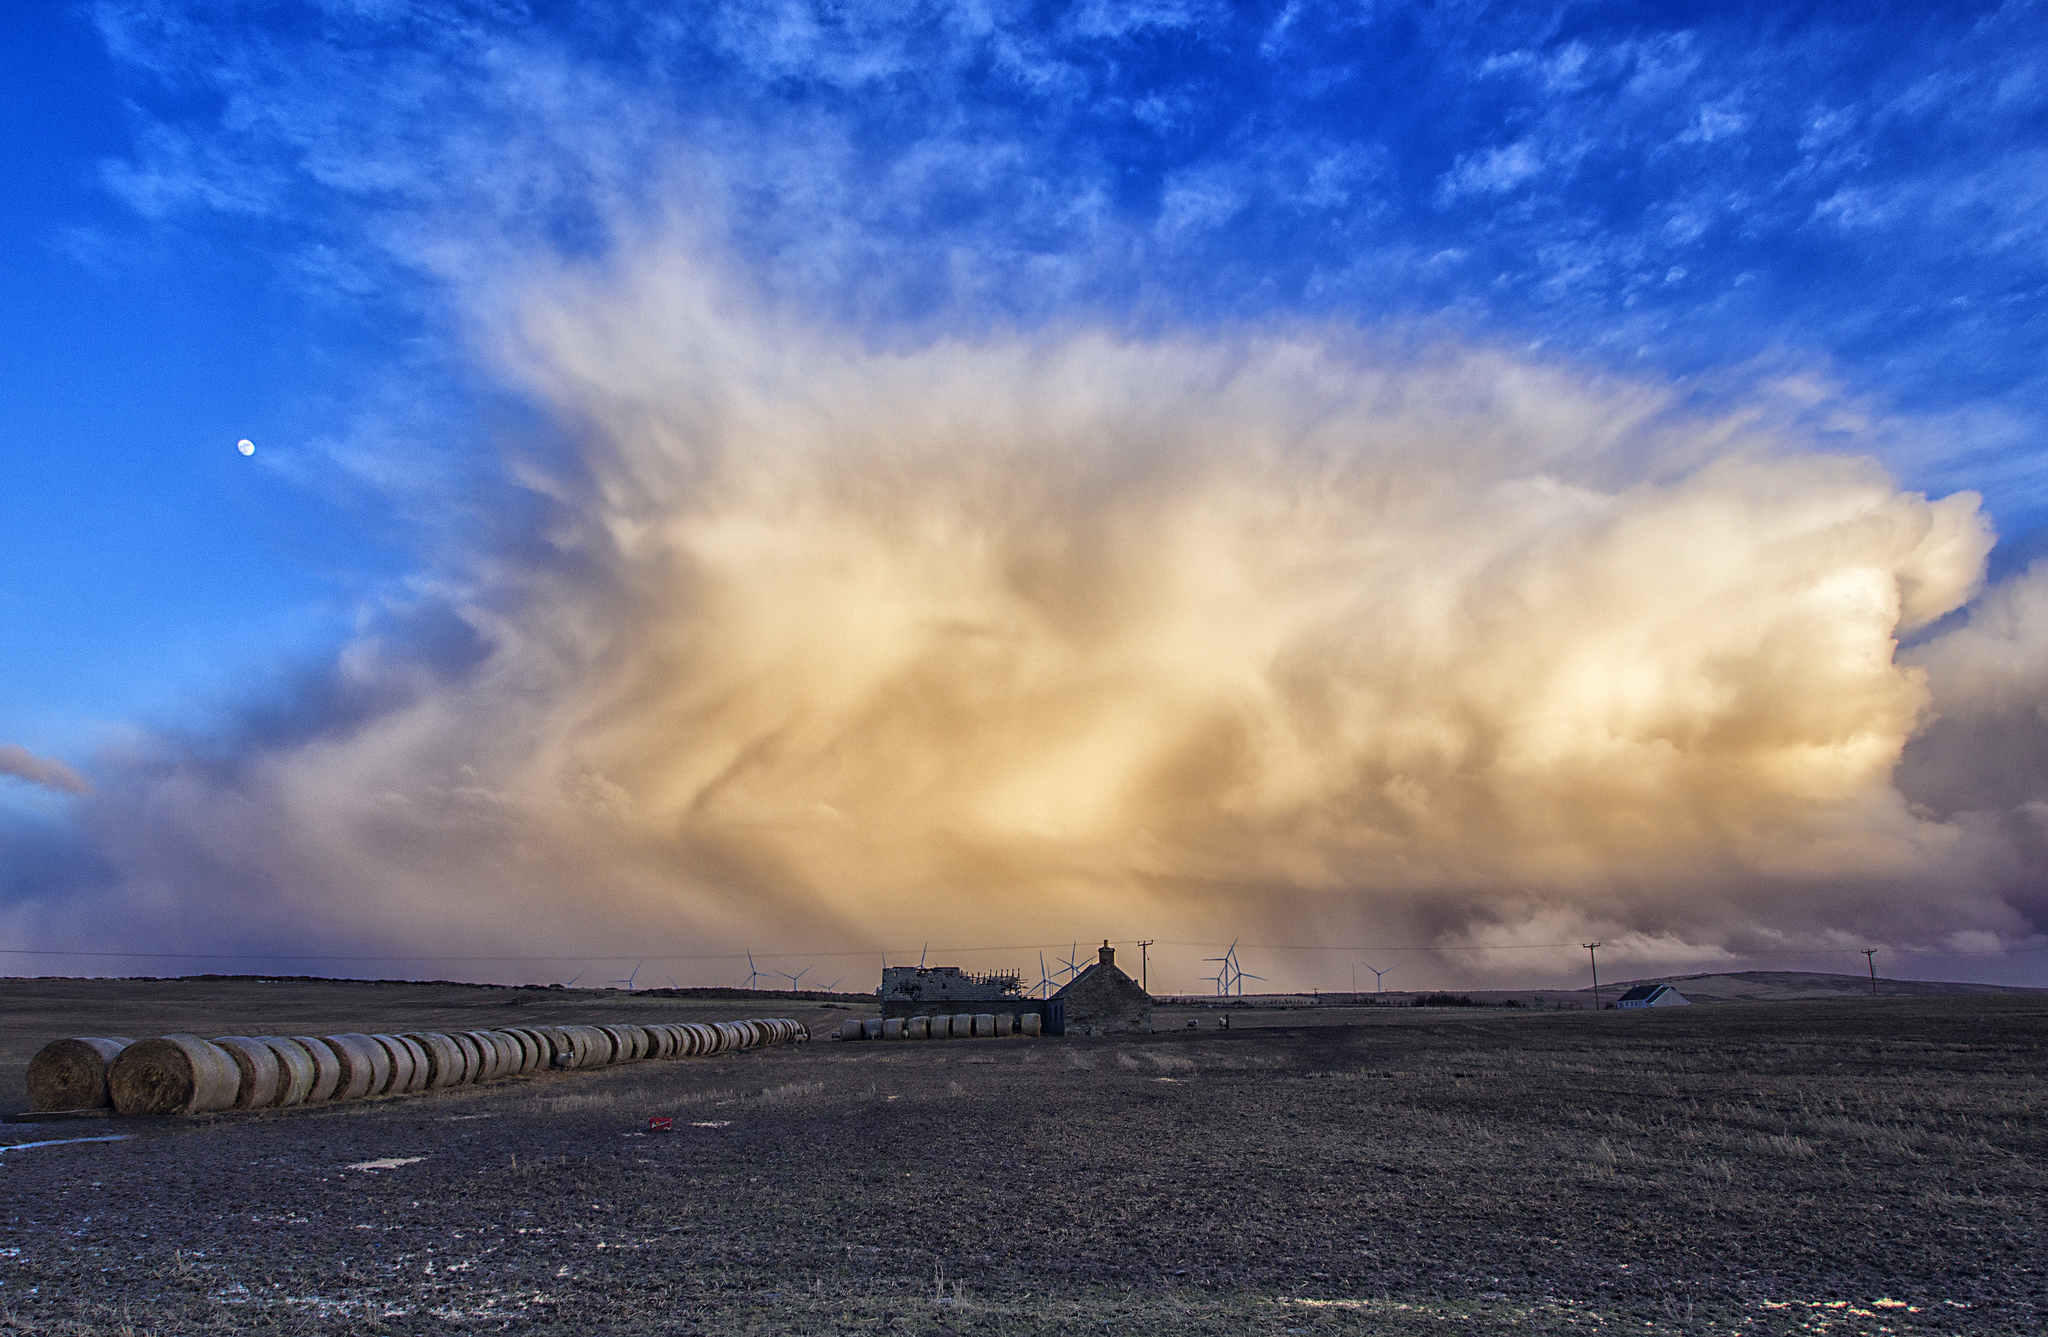 Storm Approaching. Five minutes before storm force 100 mph winds, hail and snow hit. Taken at Dounreay, far north of Scotland. Flickr - John mcsporran.